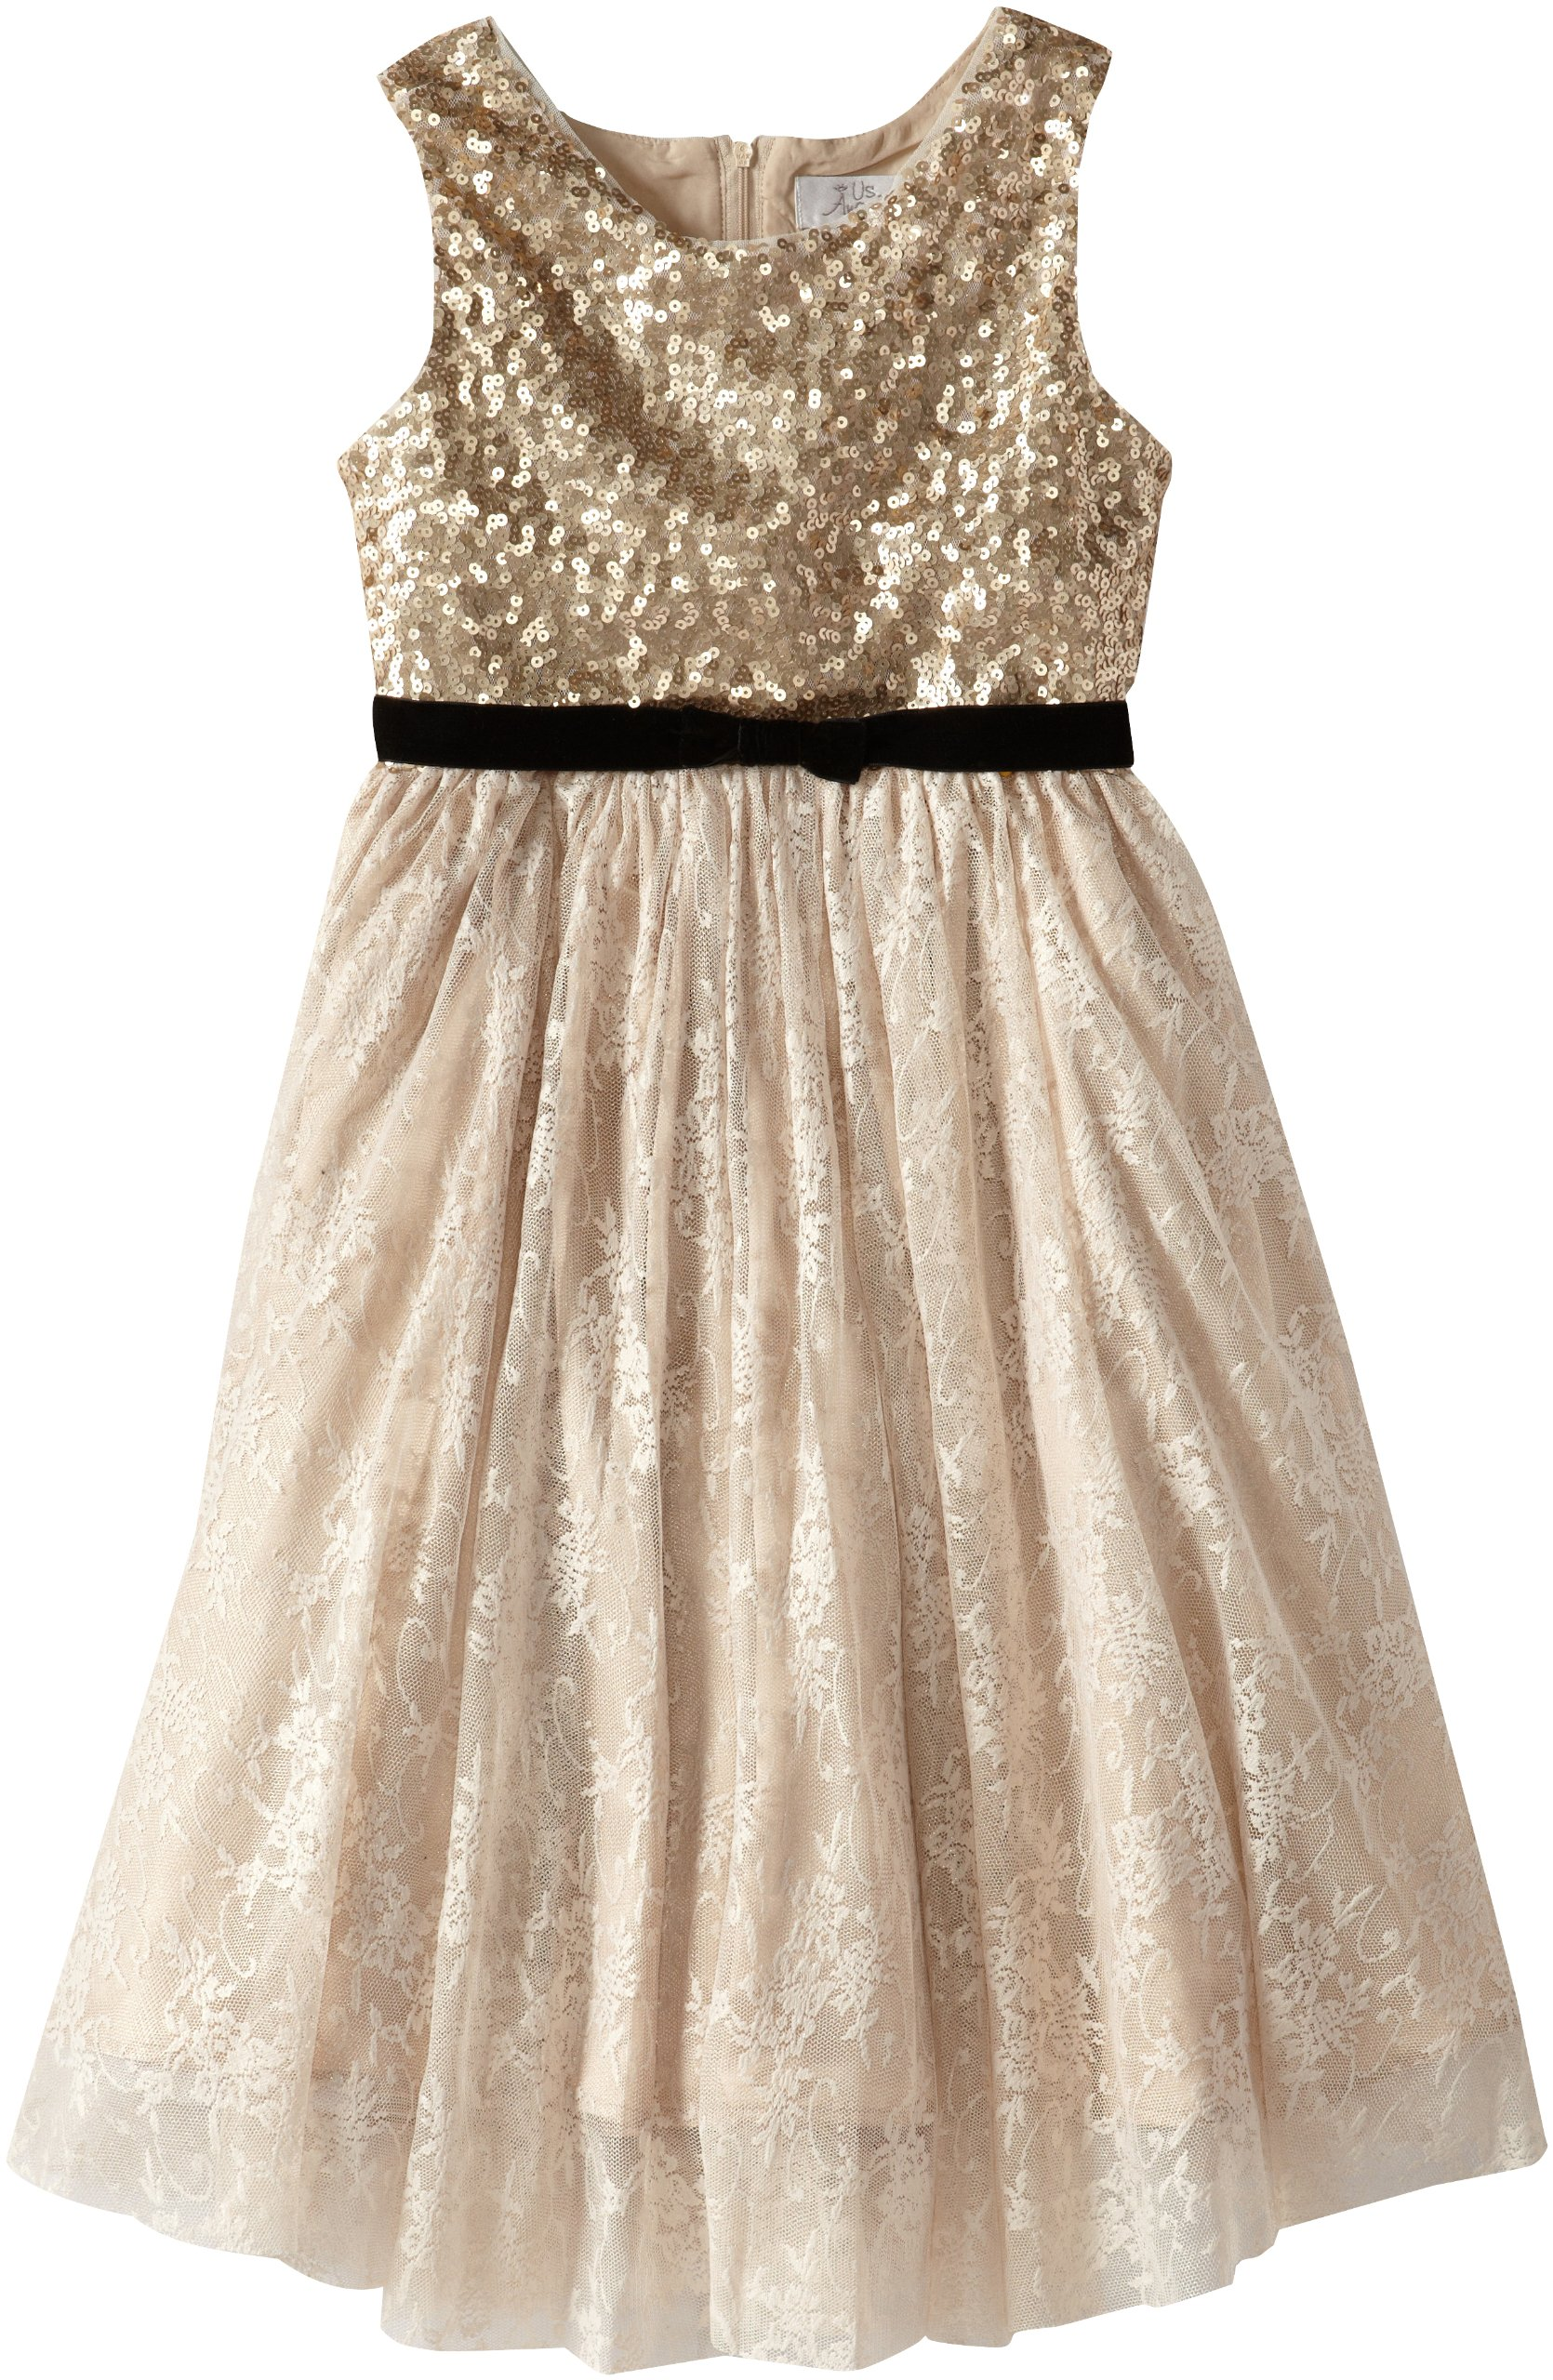 Us Angels Big Girls' Sequin Tank with Lace Skirt and Velvet Bow, Gold, 8